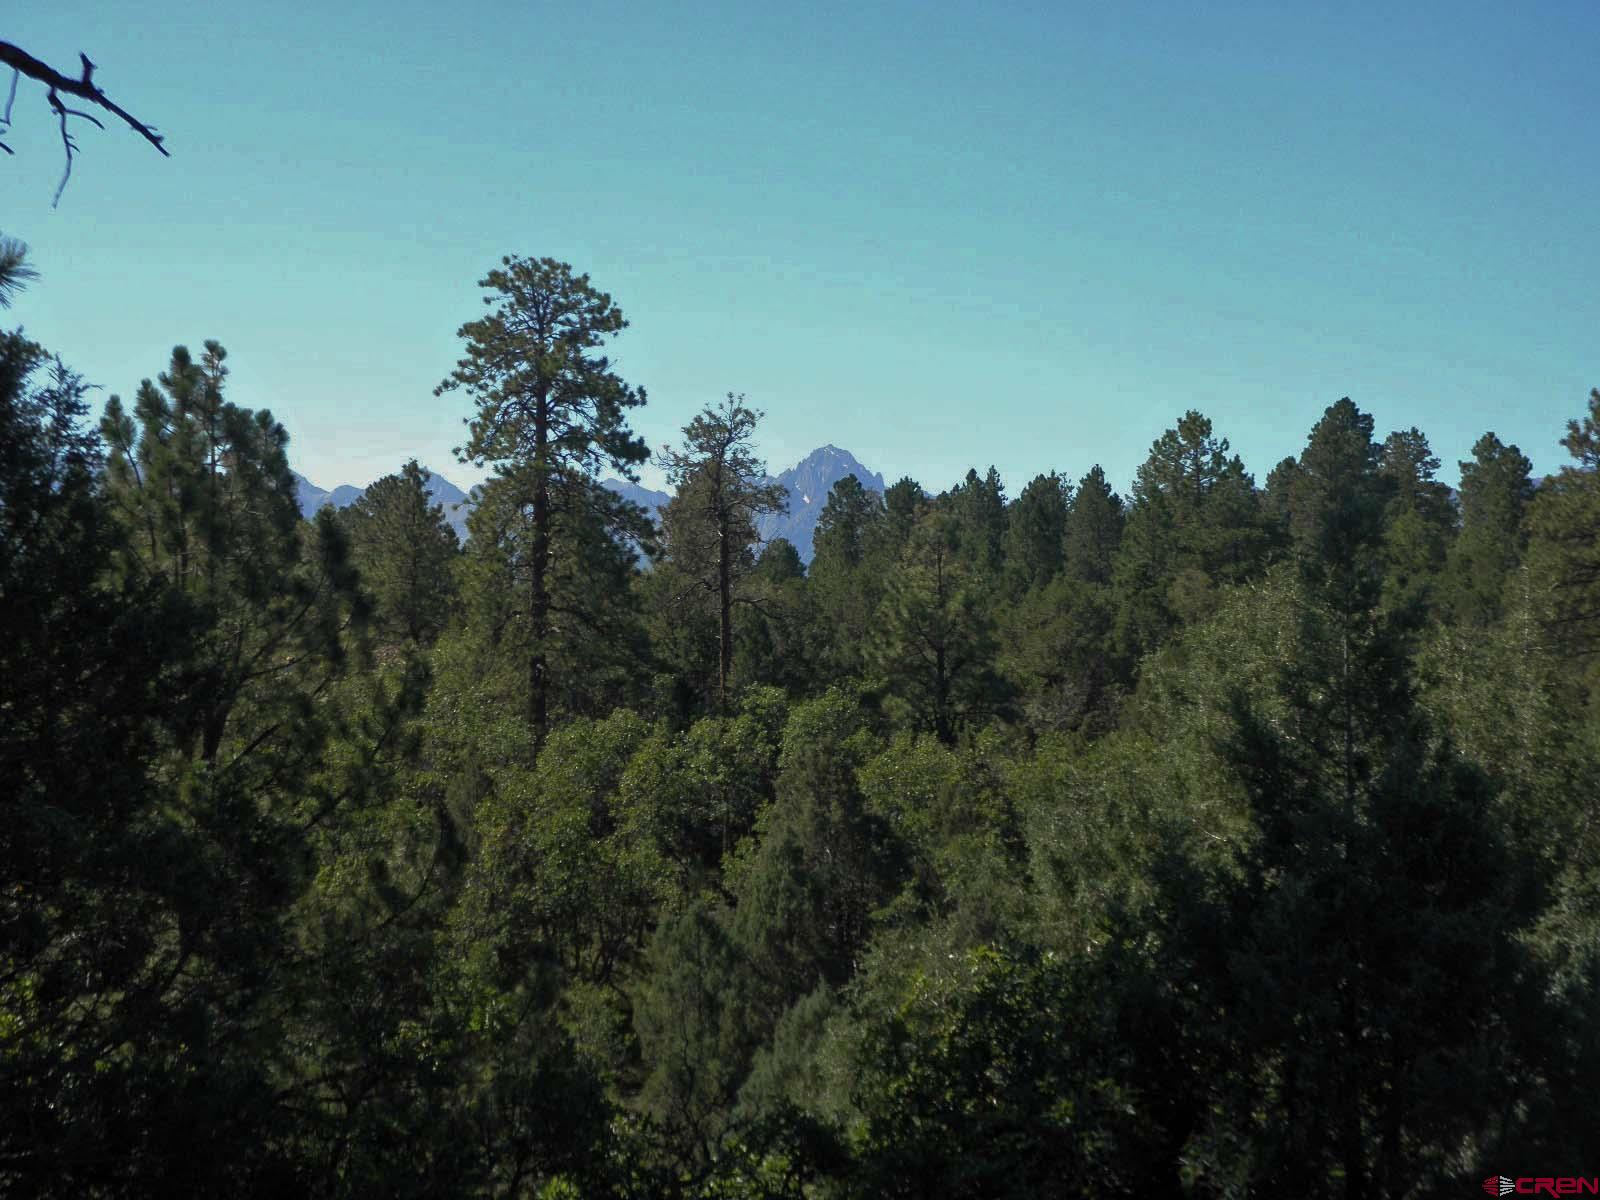 Nice views of Mt. Sneffels and the Sneffels Range, large mature Ponderosa Pines, great building site.  Make sure this lot is on the list to show buyers that want the forest and views.   There is a $3,000 membership transfer fee, buyer is to pay that fee.